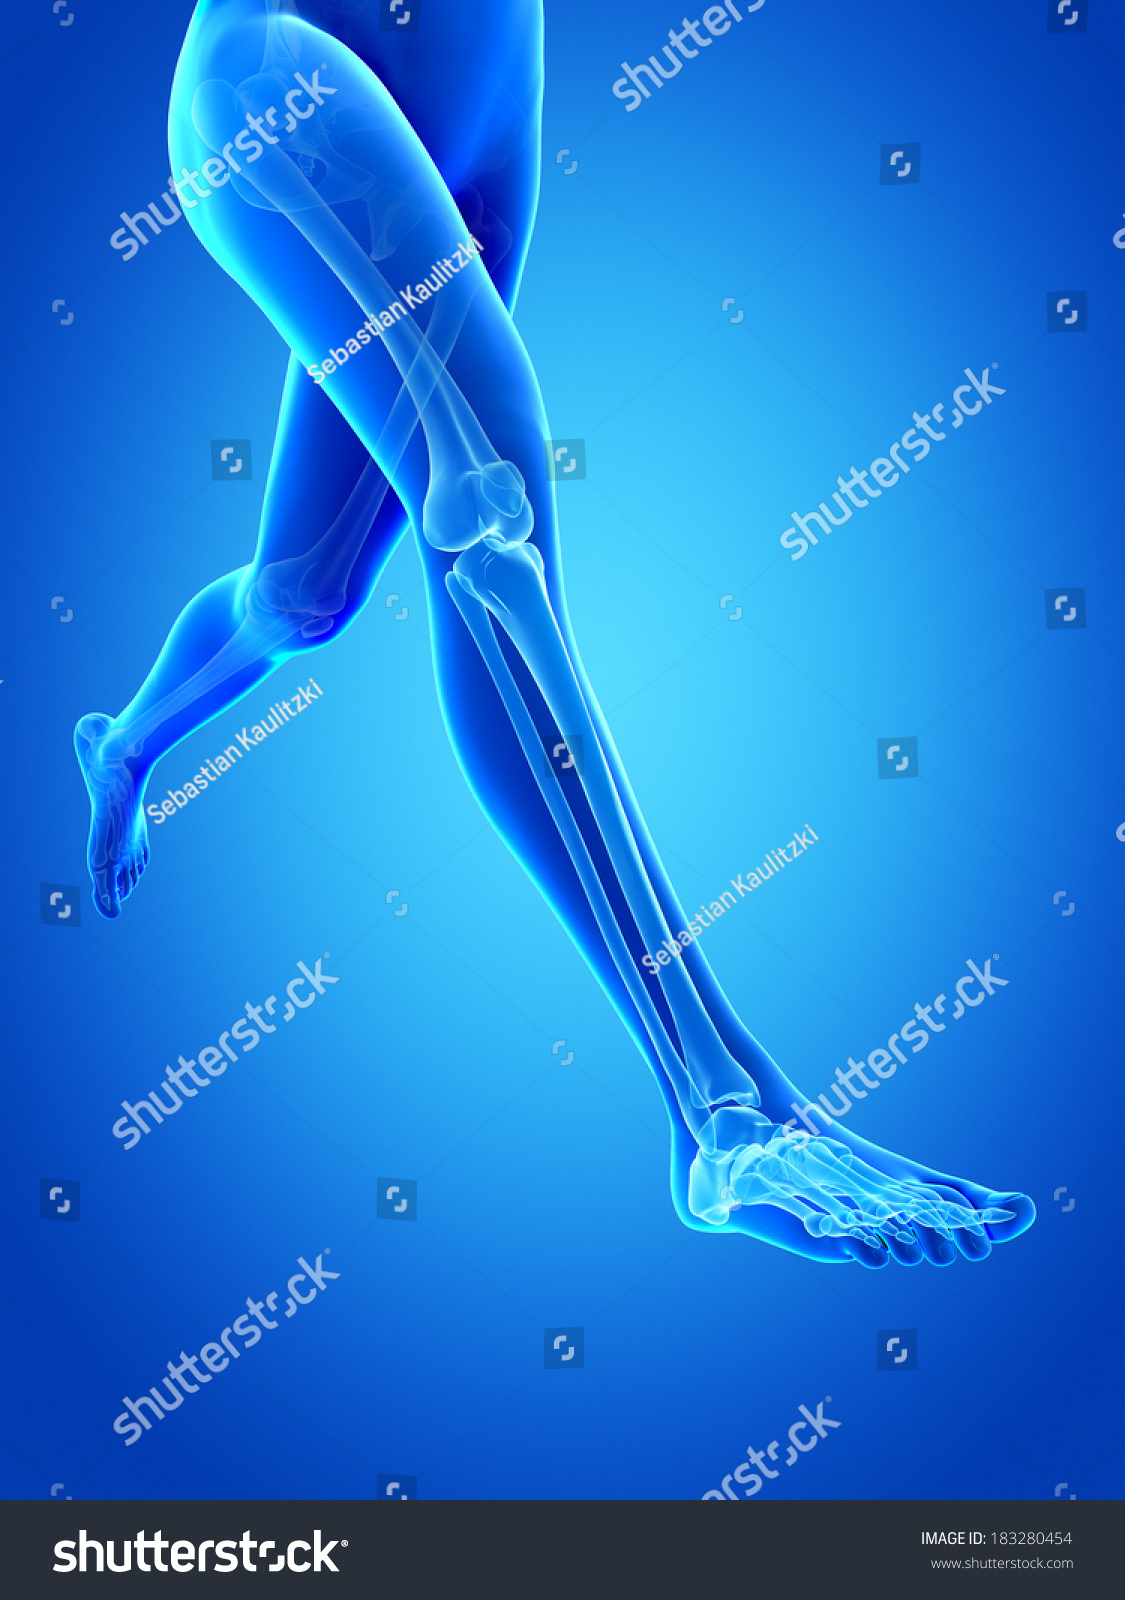 Woman Running Visible Anatomy Leg Bones Stock Illustration 183280454